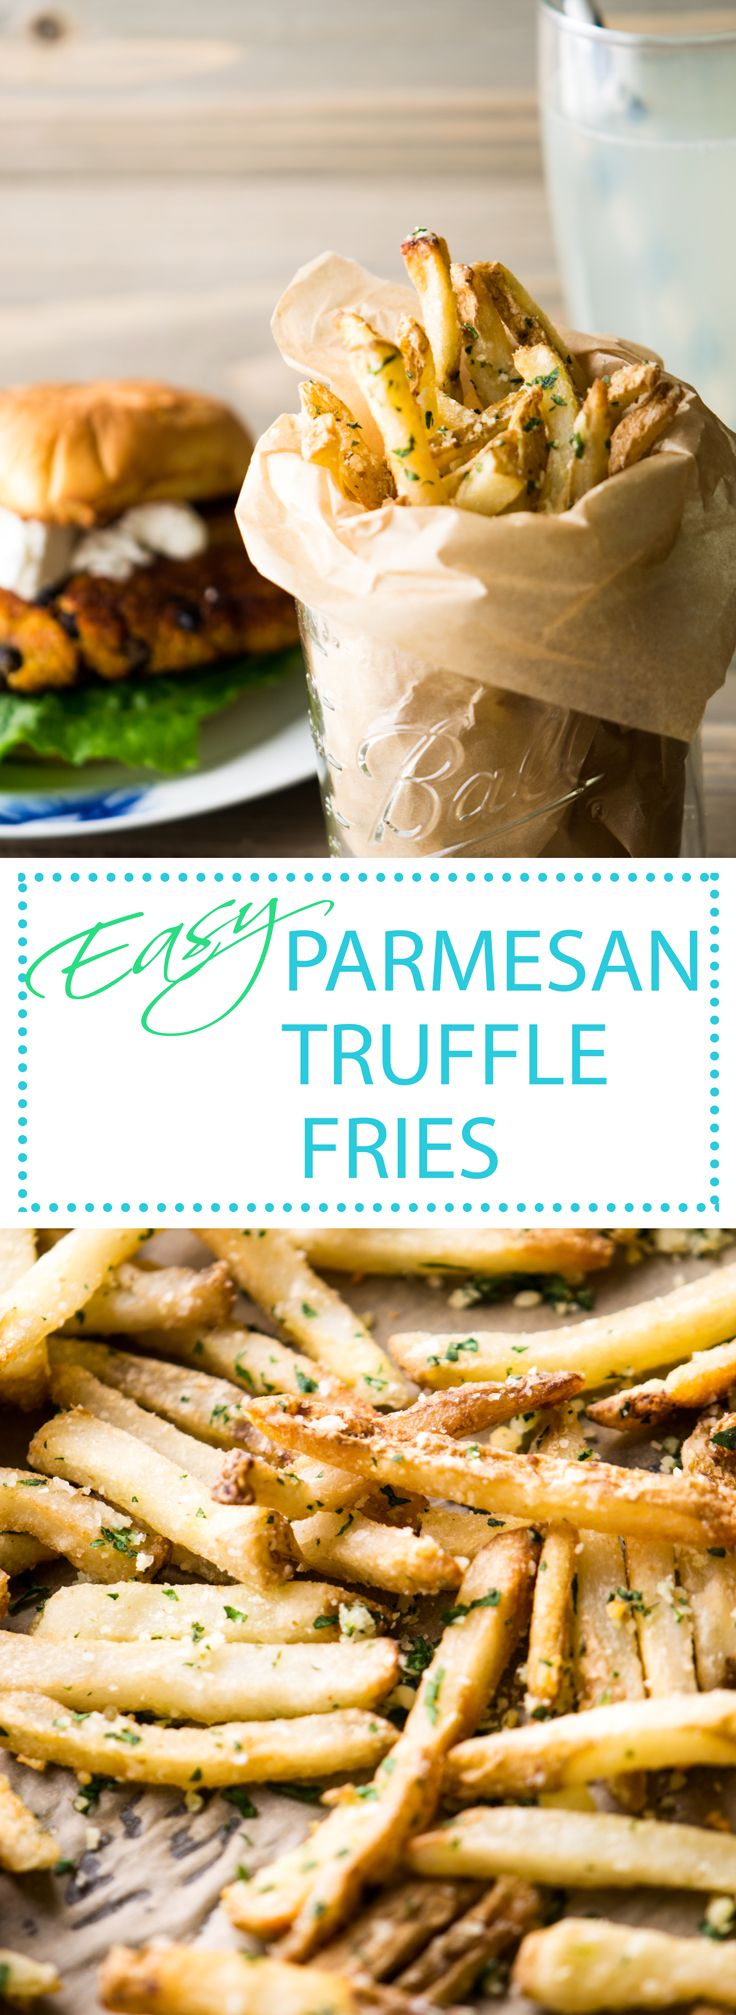 Restaurant Style Truffle Fries with Fresh Parmesan & Parsley